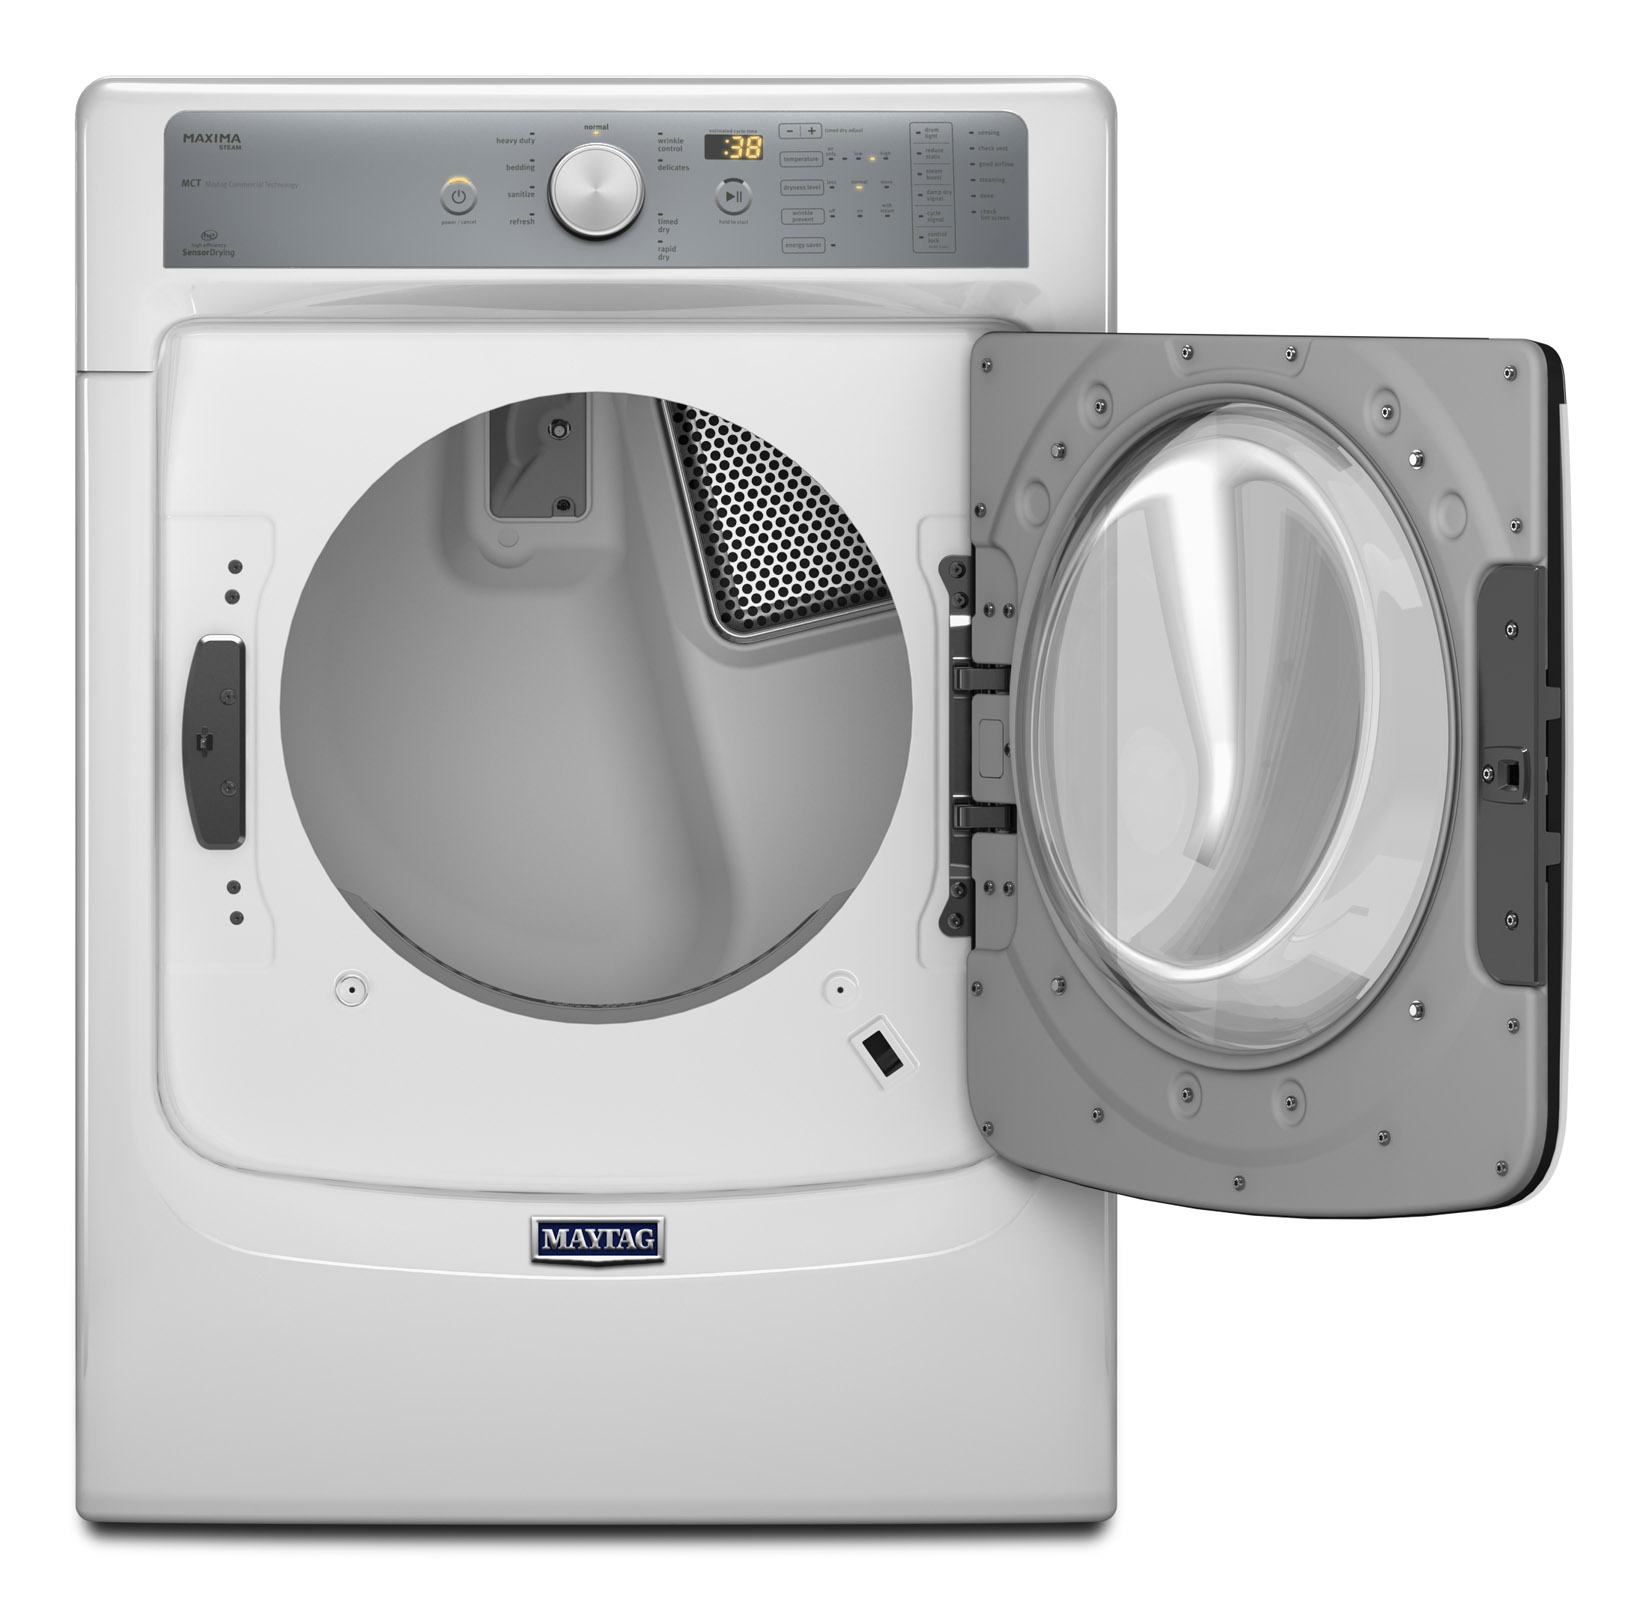 Maytag 7.4 cu. ft. Maxima® Electric Dryer w/ Stainless Steel Drum - White